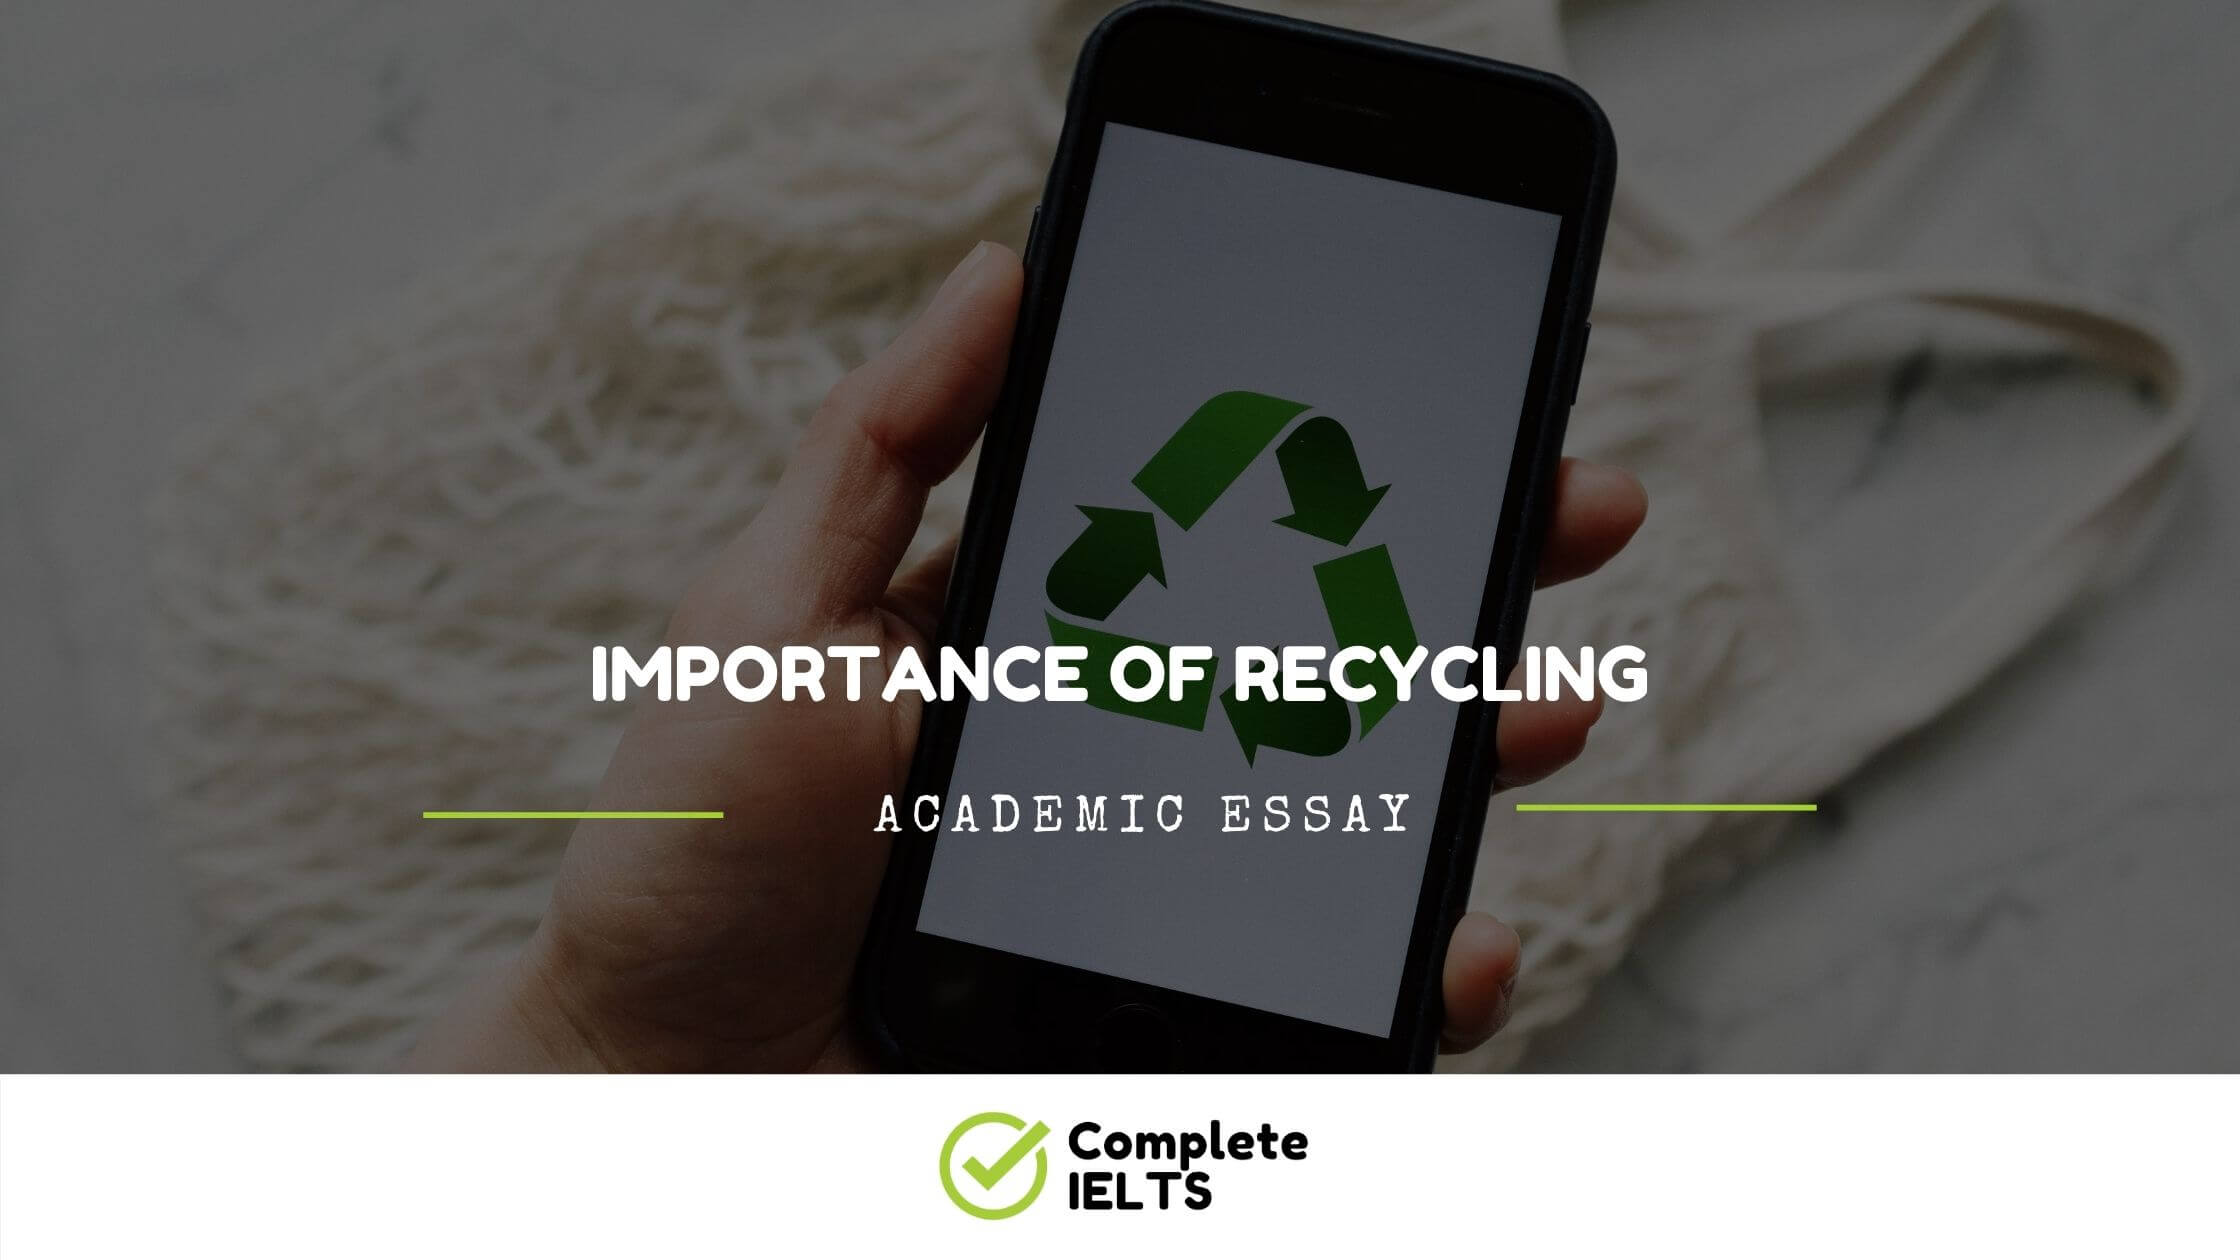 Essay on Importance of Recycling